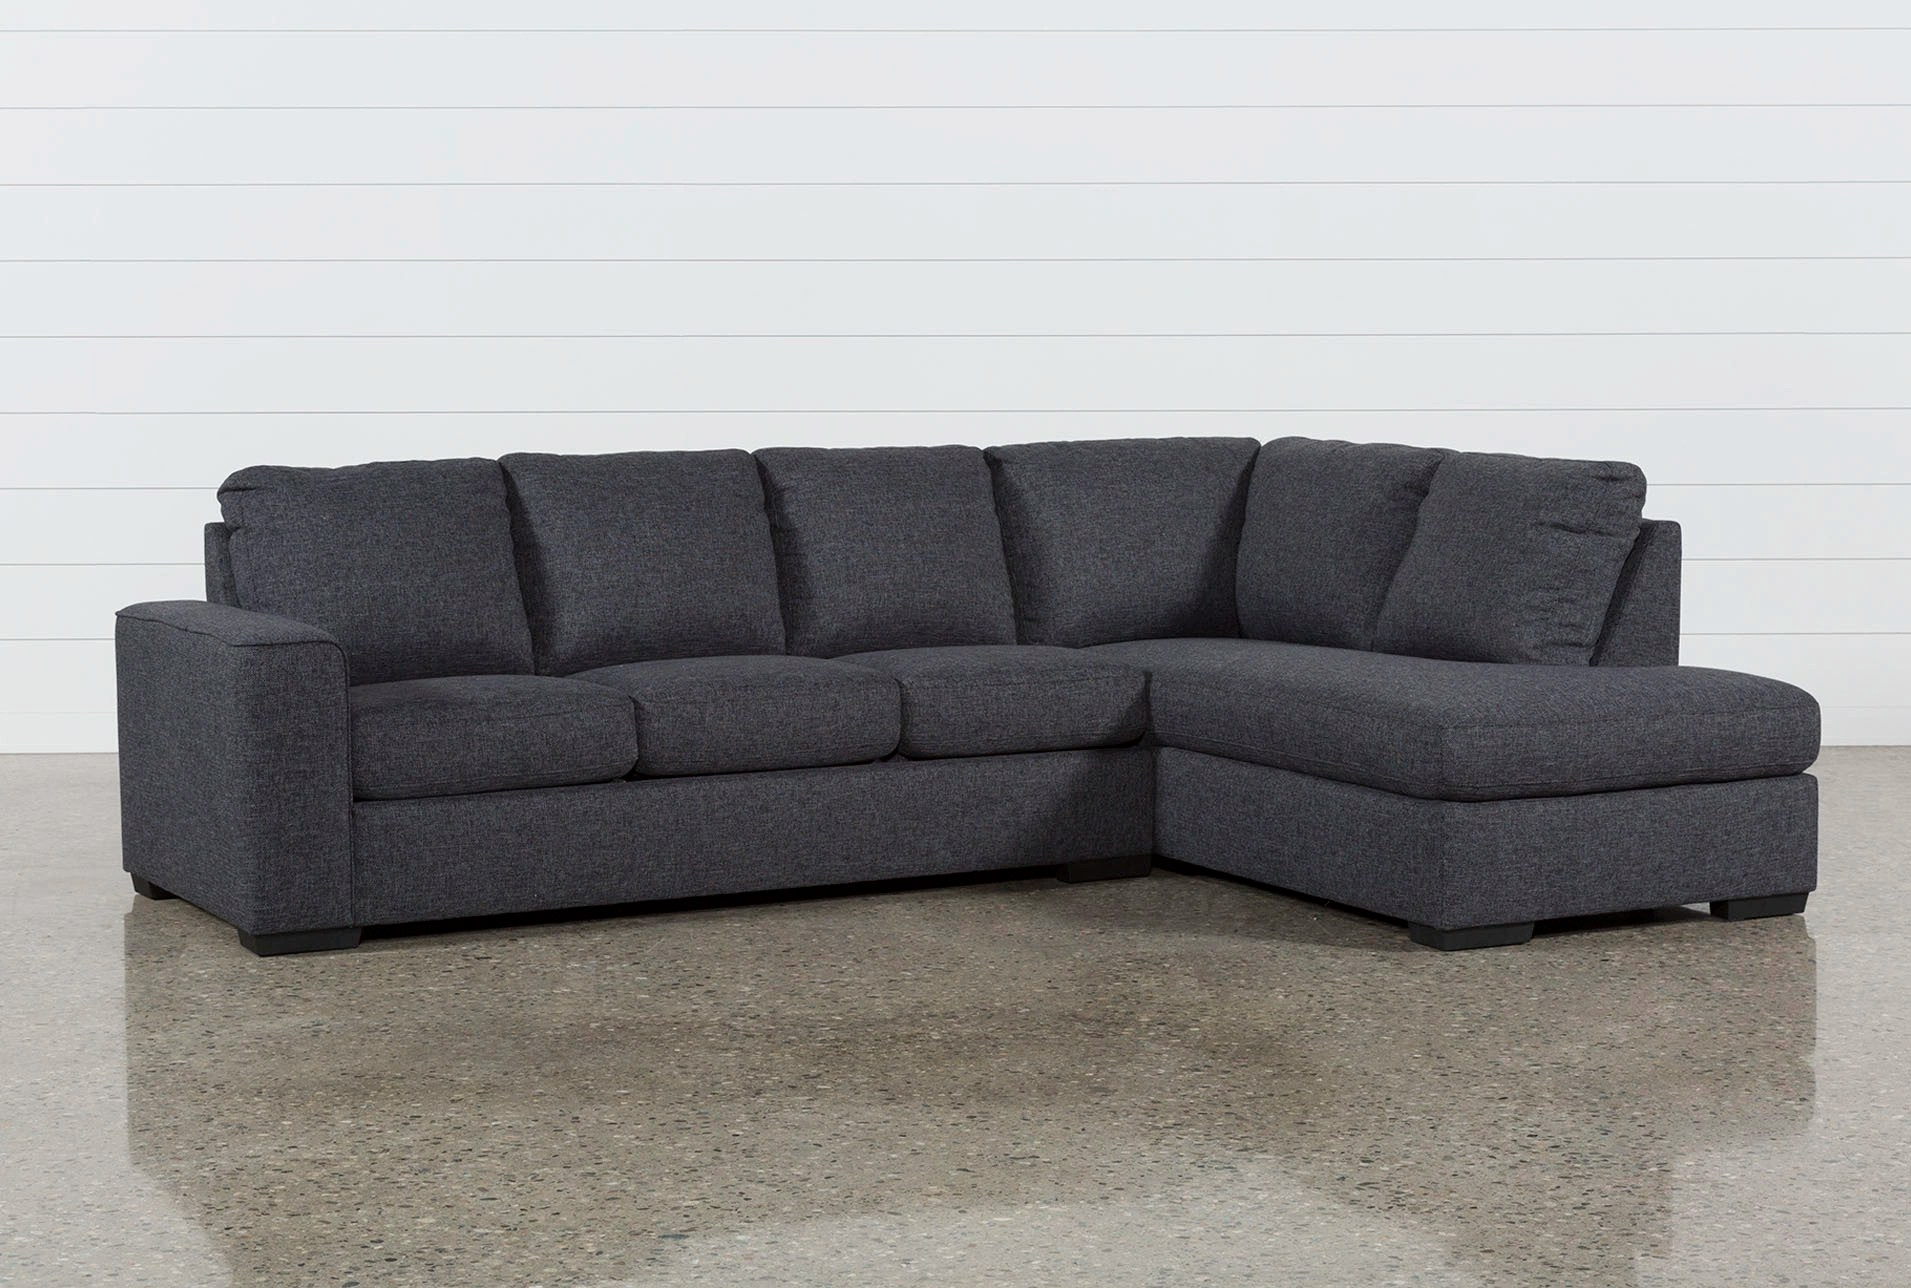 recliner sectional sleeper sofa pierre paulin sofas living spaces lucy dark grey 2 piece w raf chaise